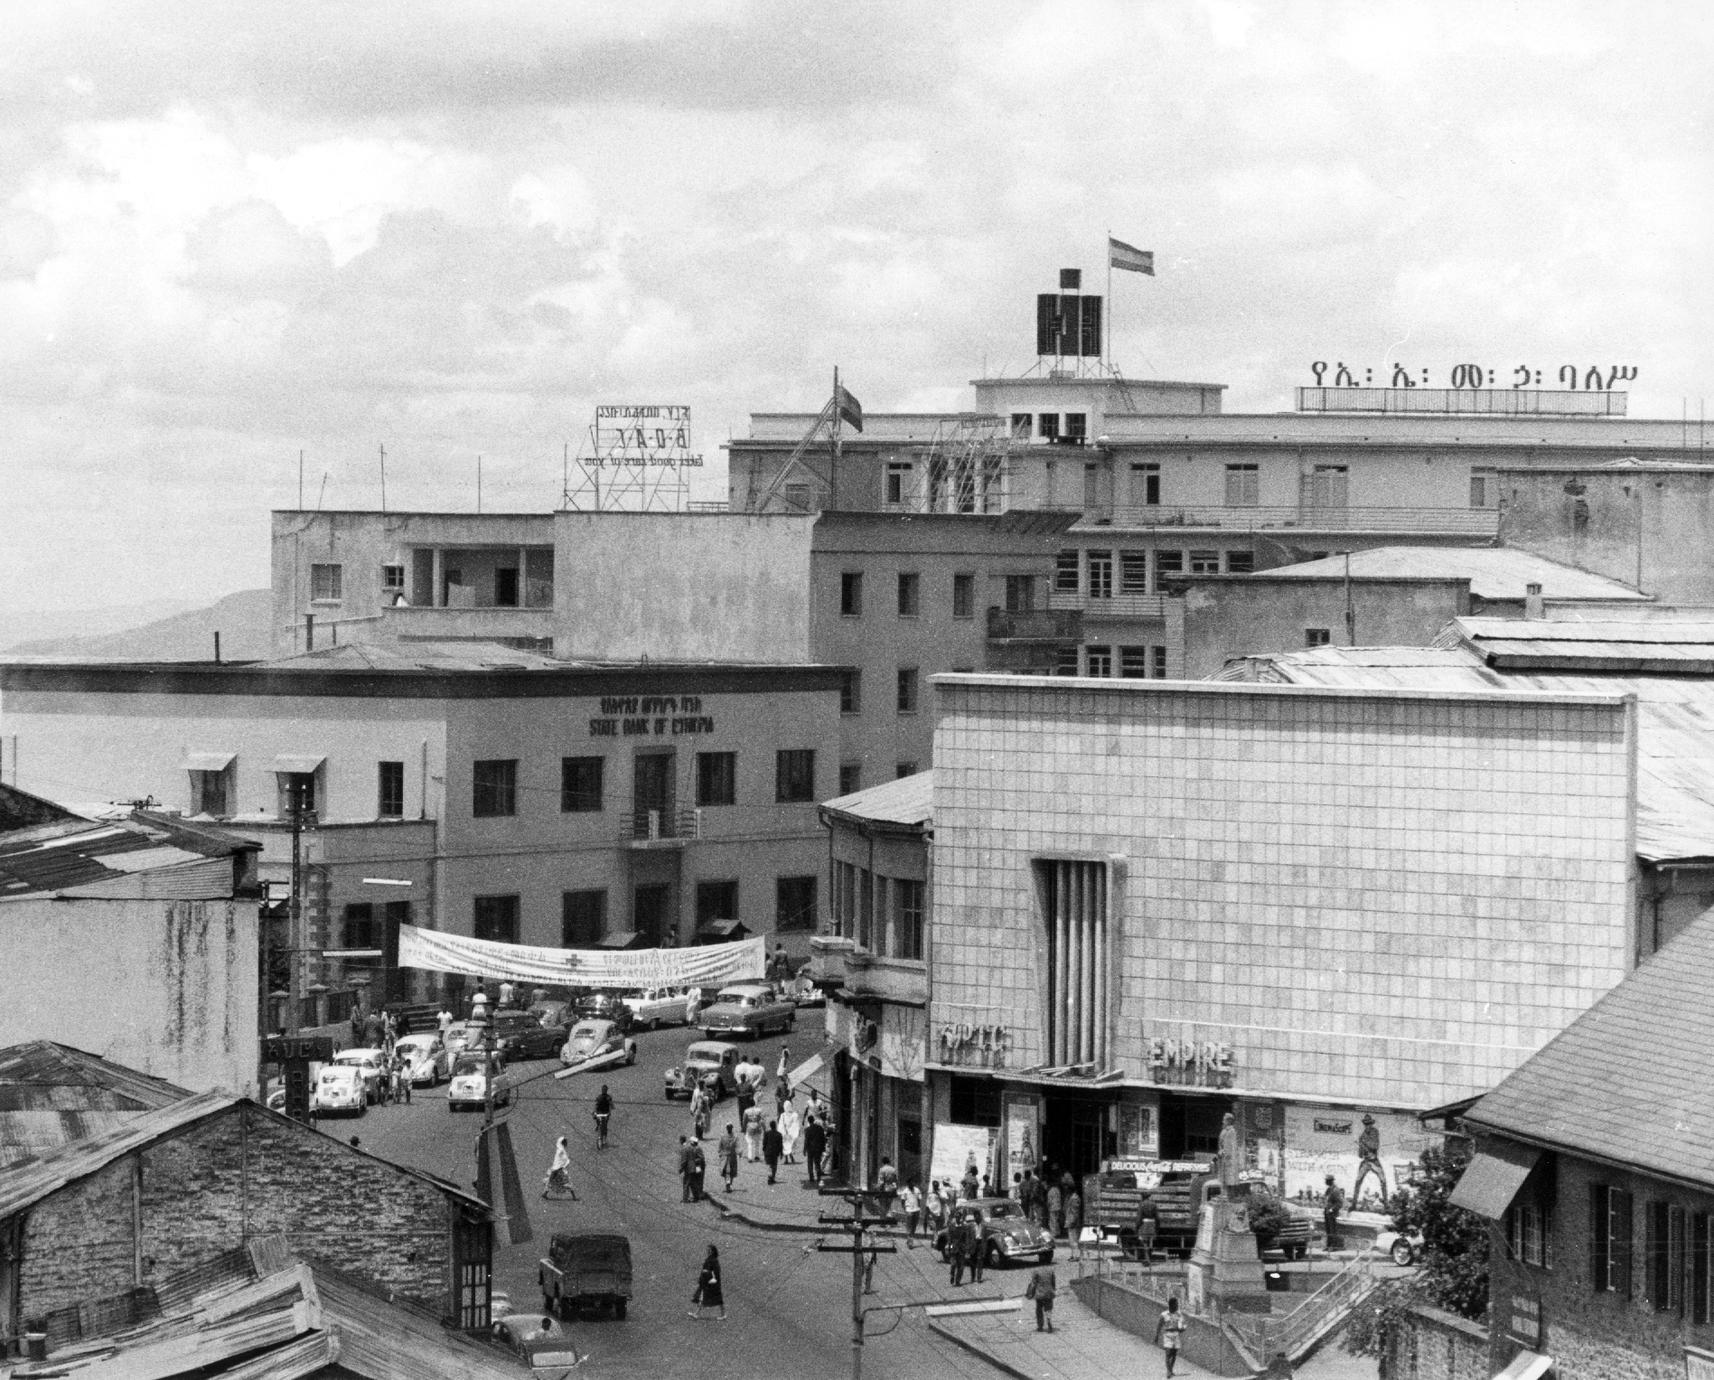 Empire Movie Theater and Shops in Downtown Addis Ababa, 1958-60